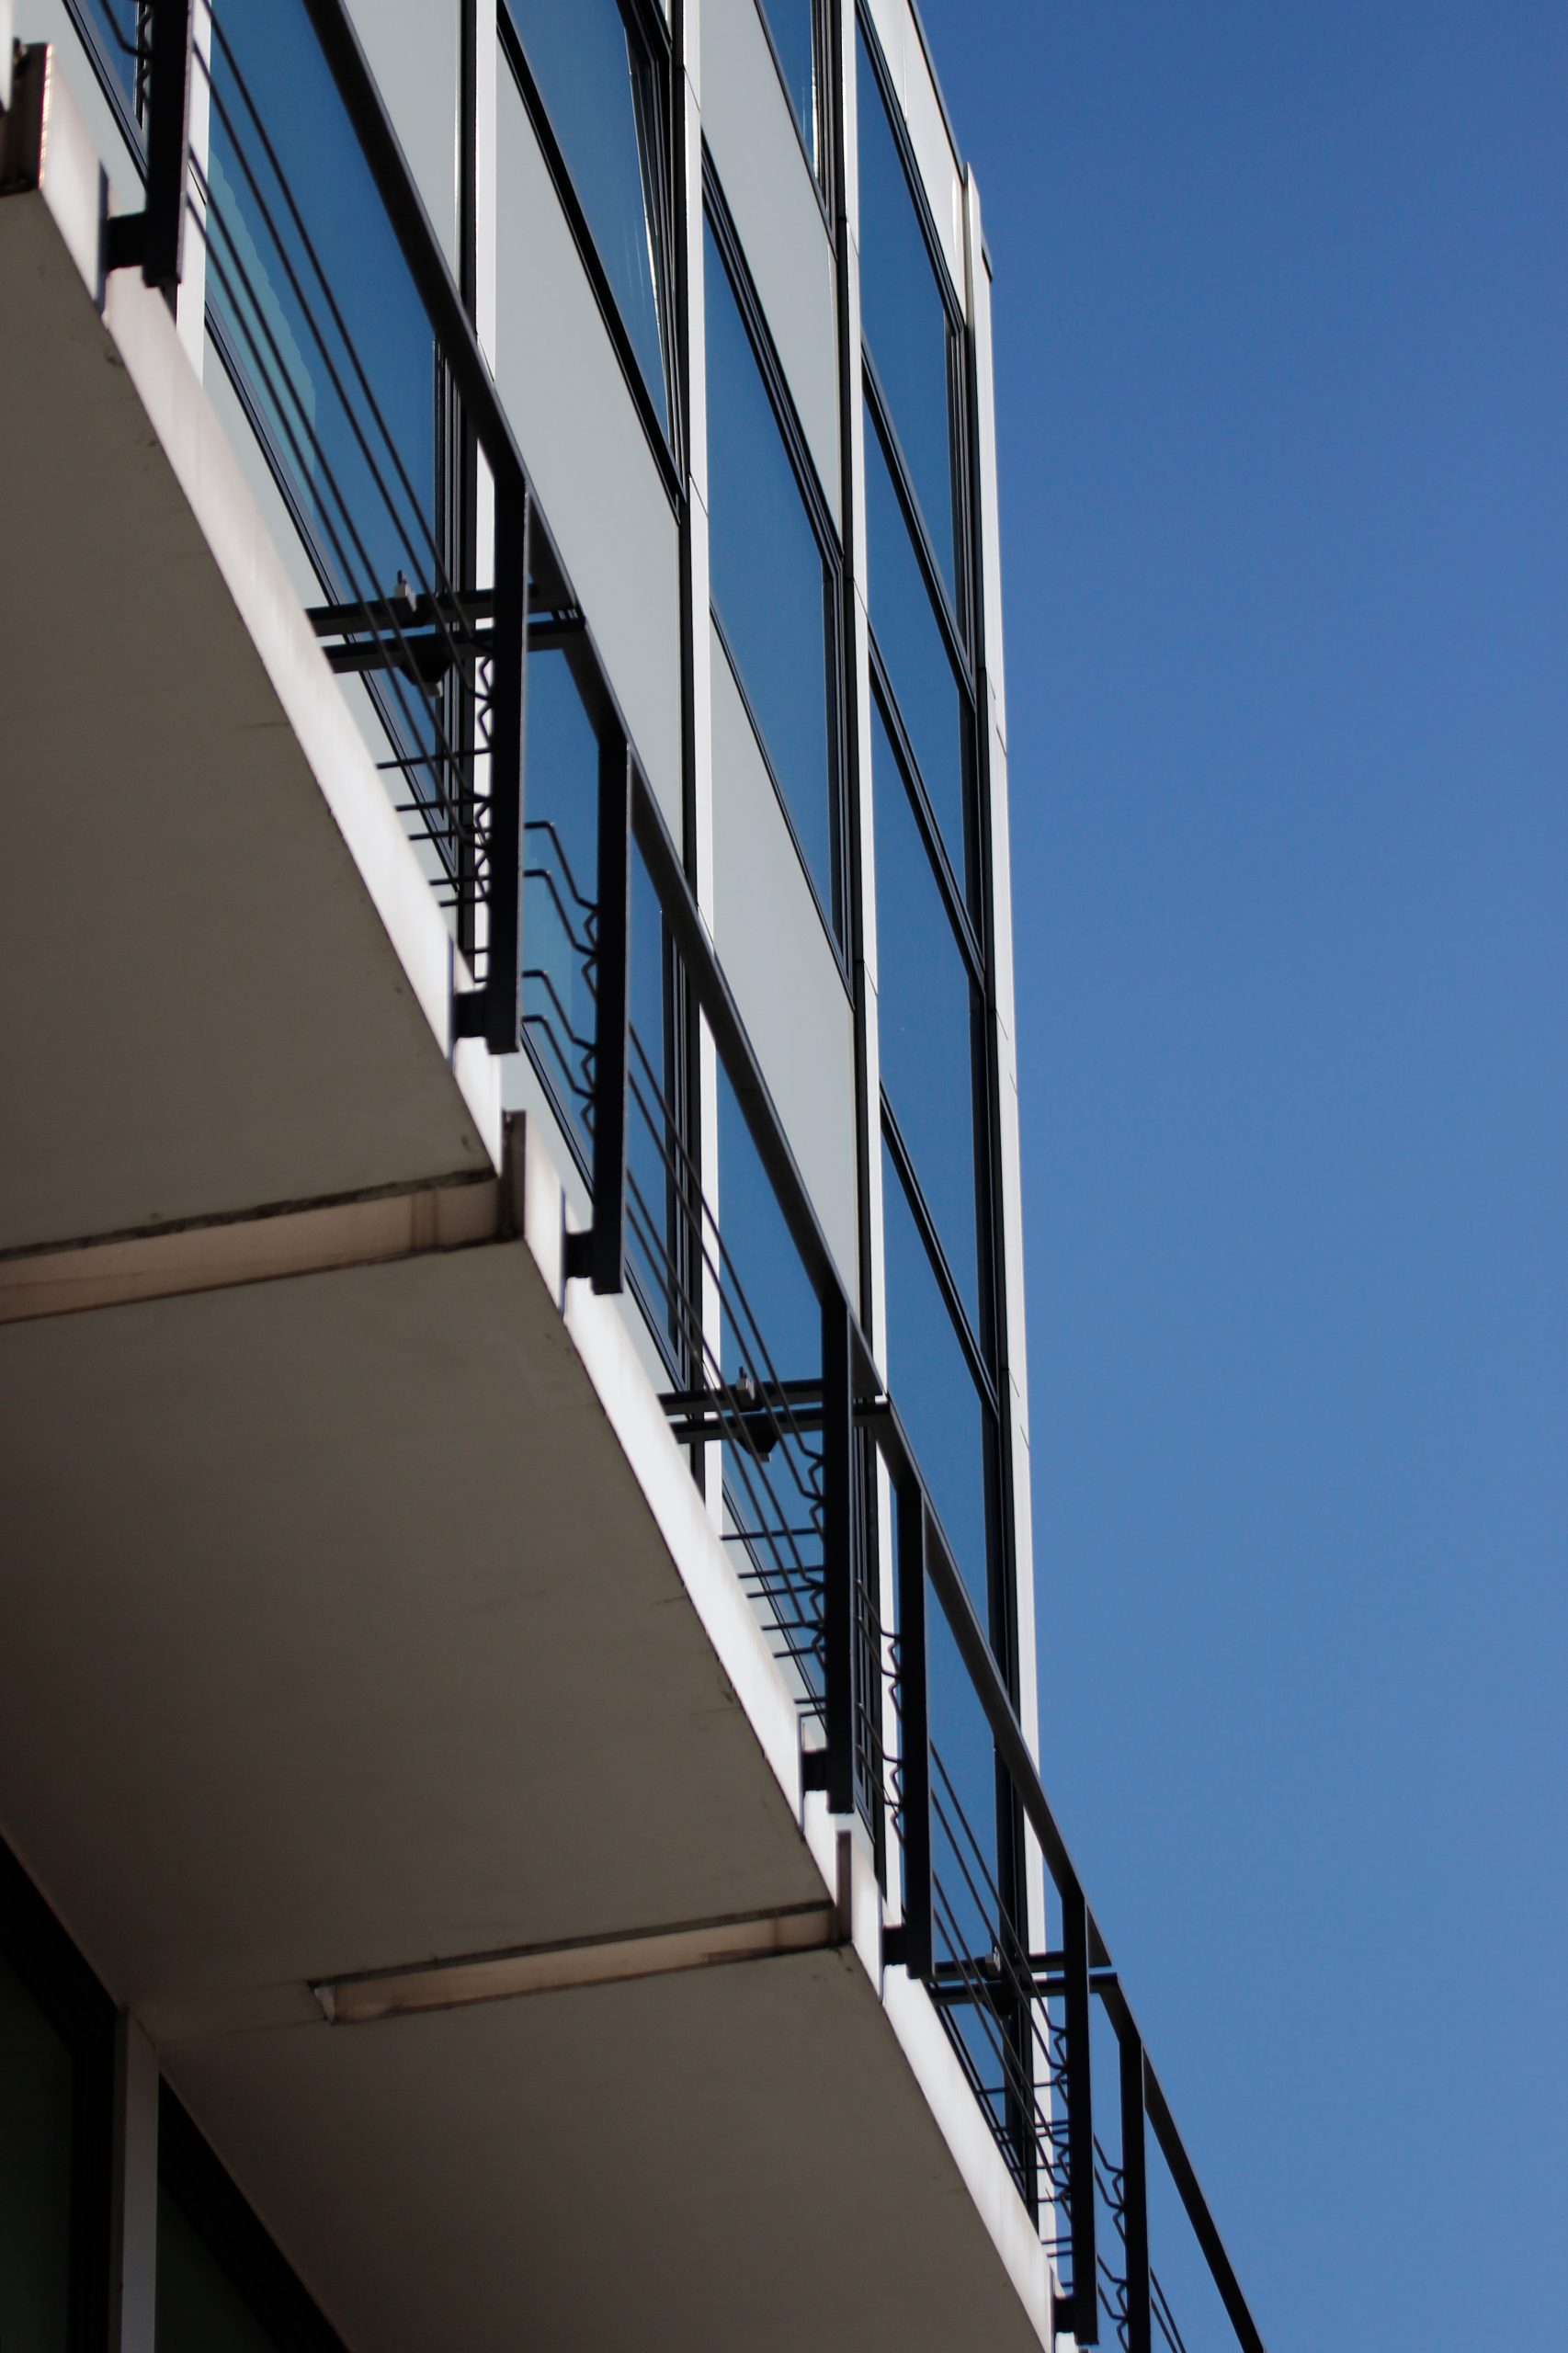 """Facade of the """"Musiktheater im Revier"""" in Gelsenkirchen from a low angle view."""